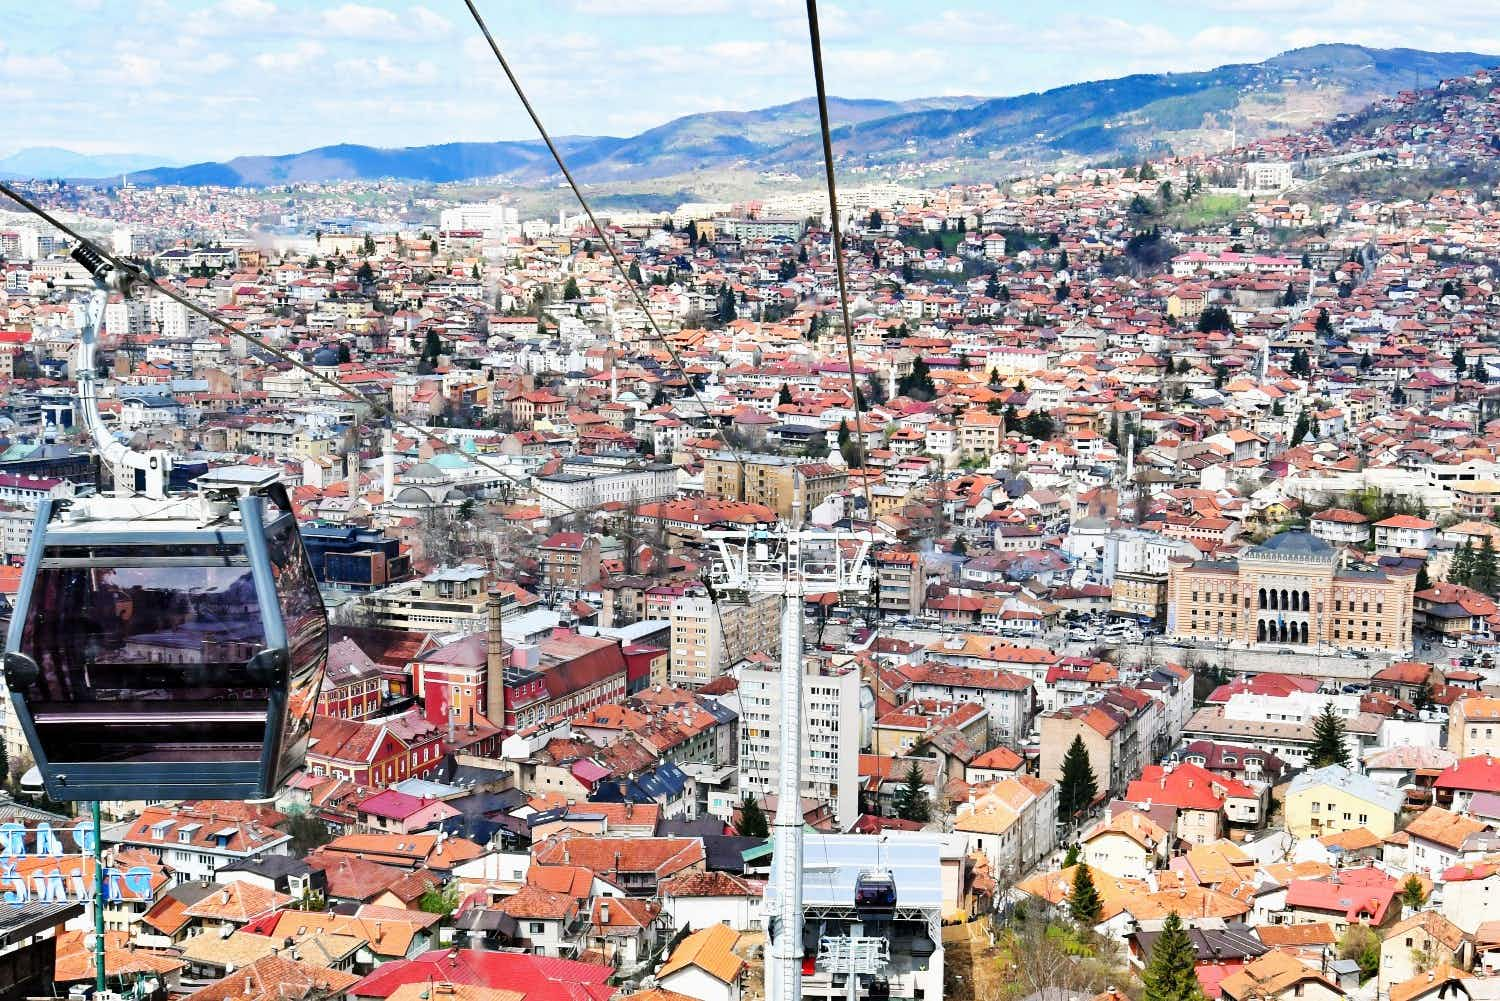 Sarajevo reopens its famous cable car in Mount Trebević after 26 years